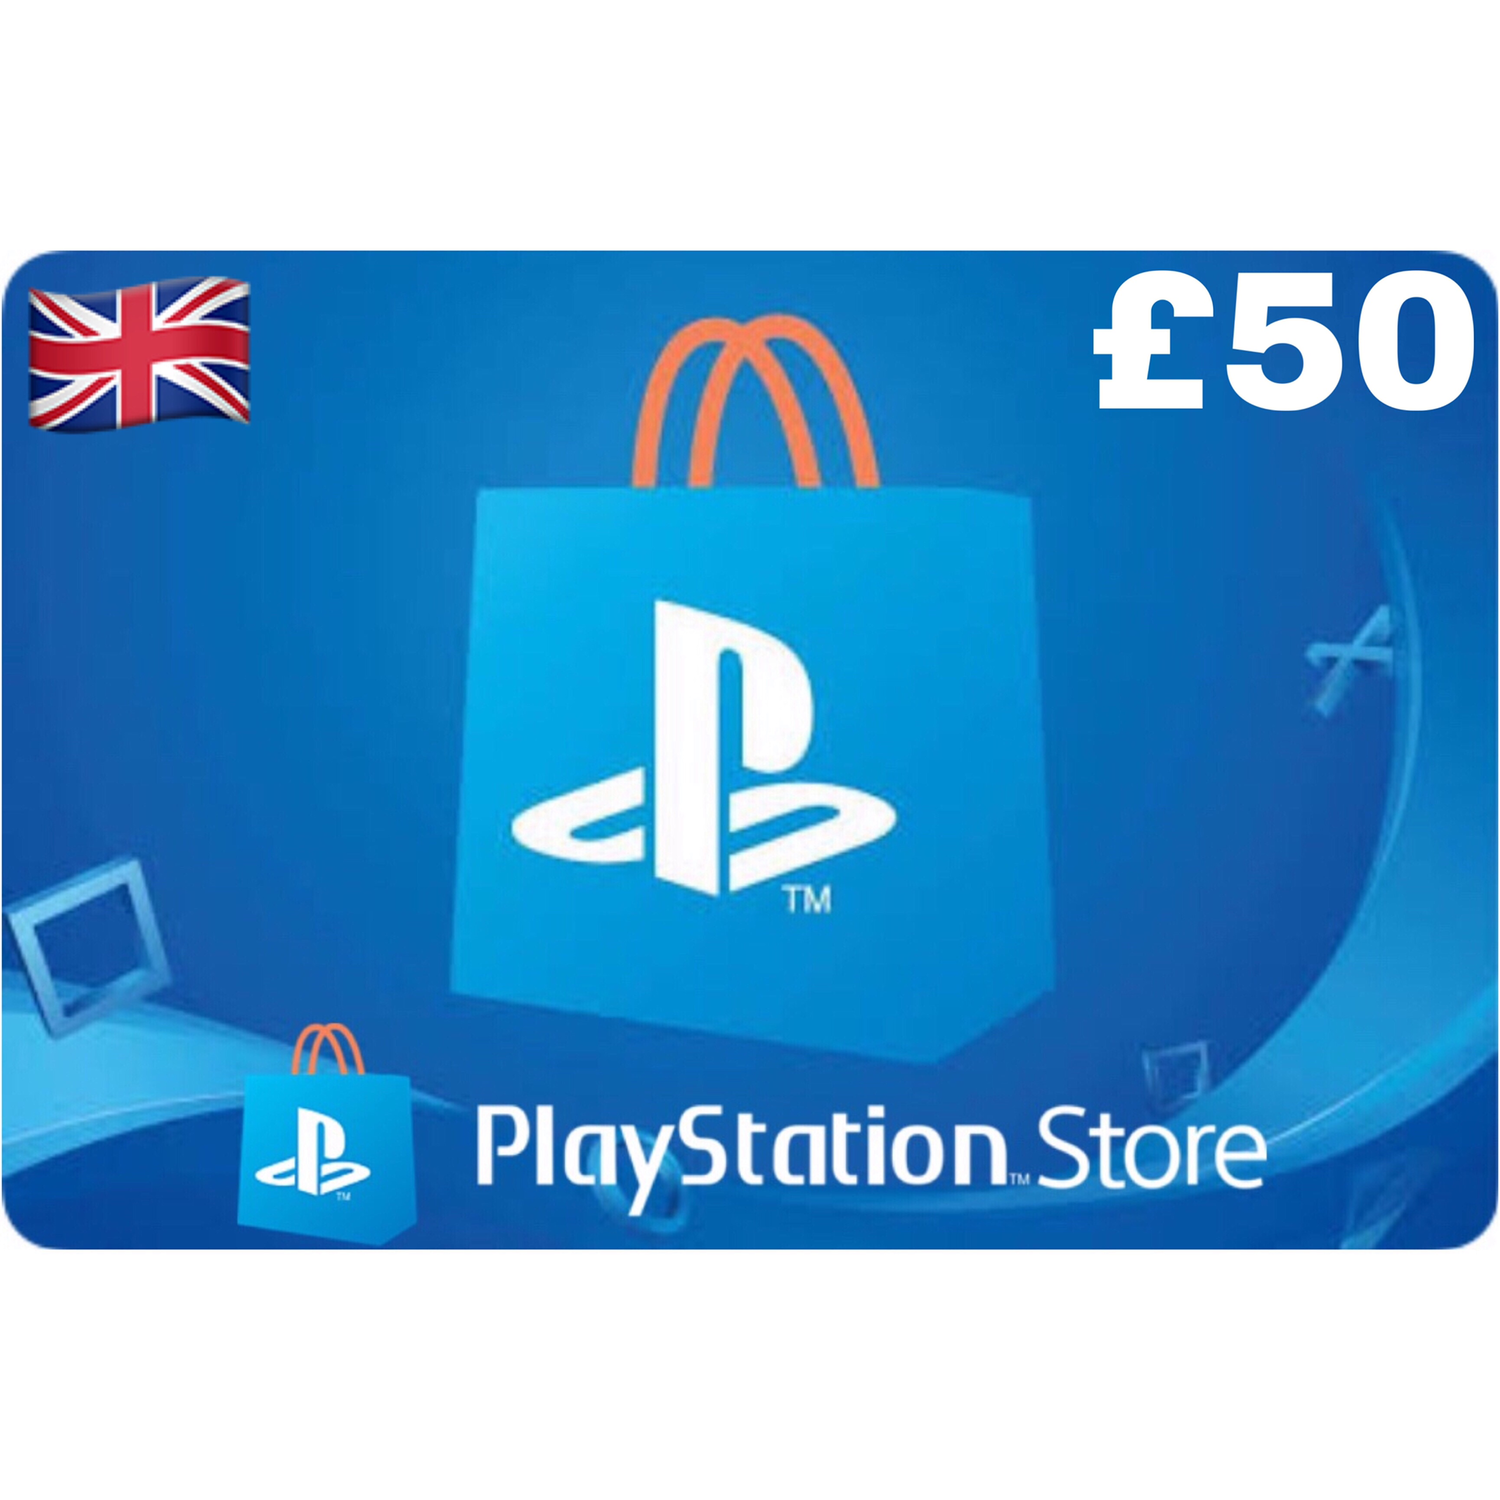 PSN Card - Playstation Network UK £50